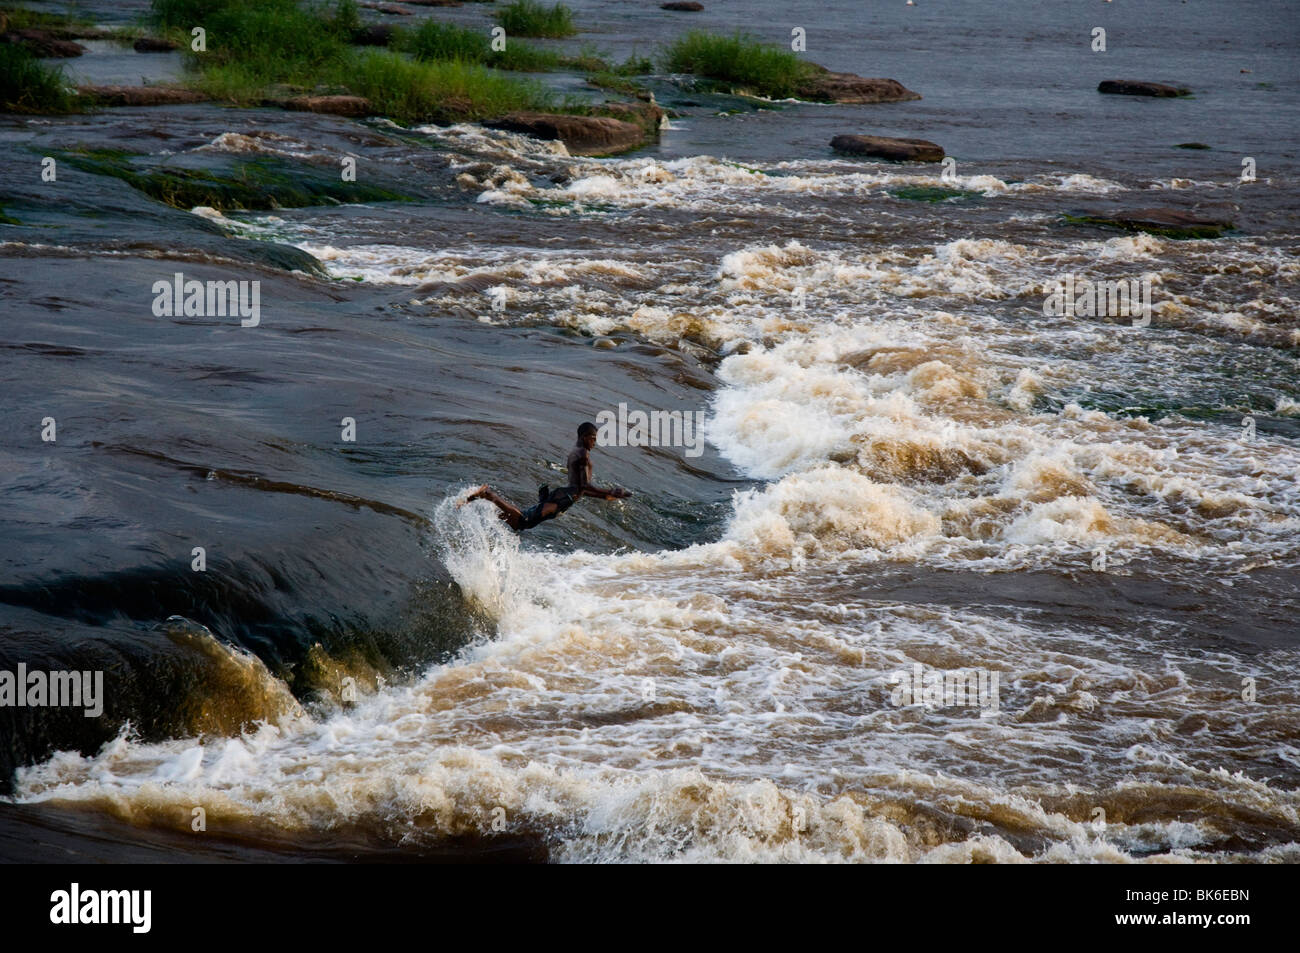 Mow mature is the congo river